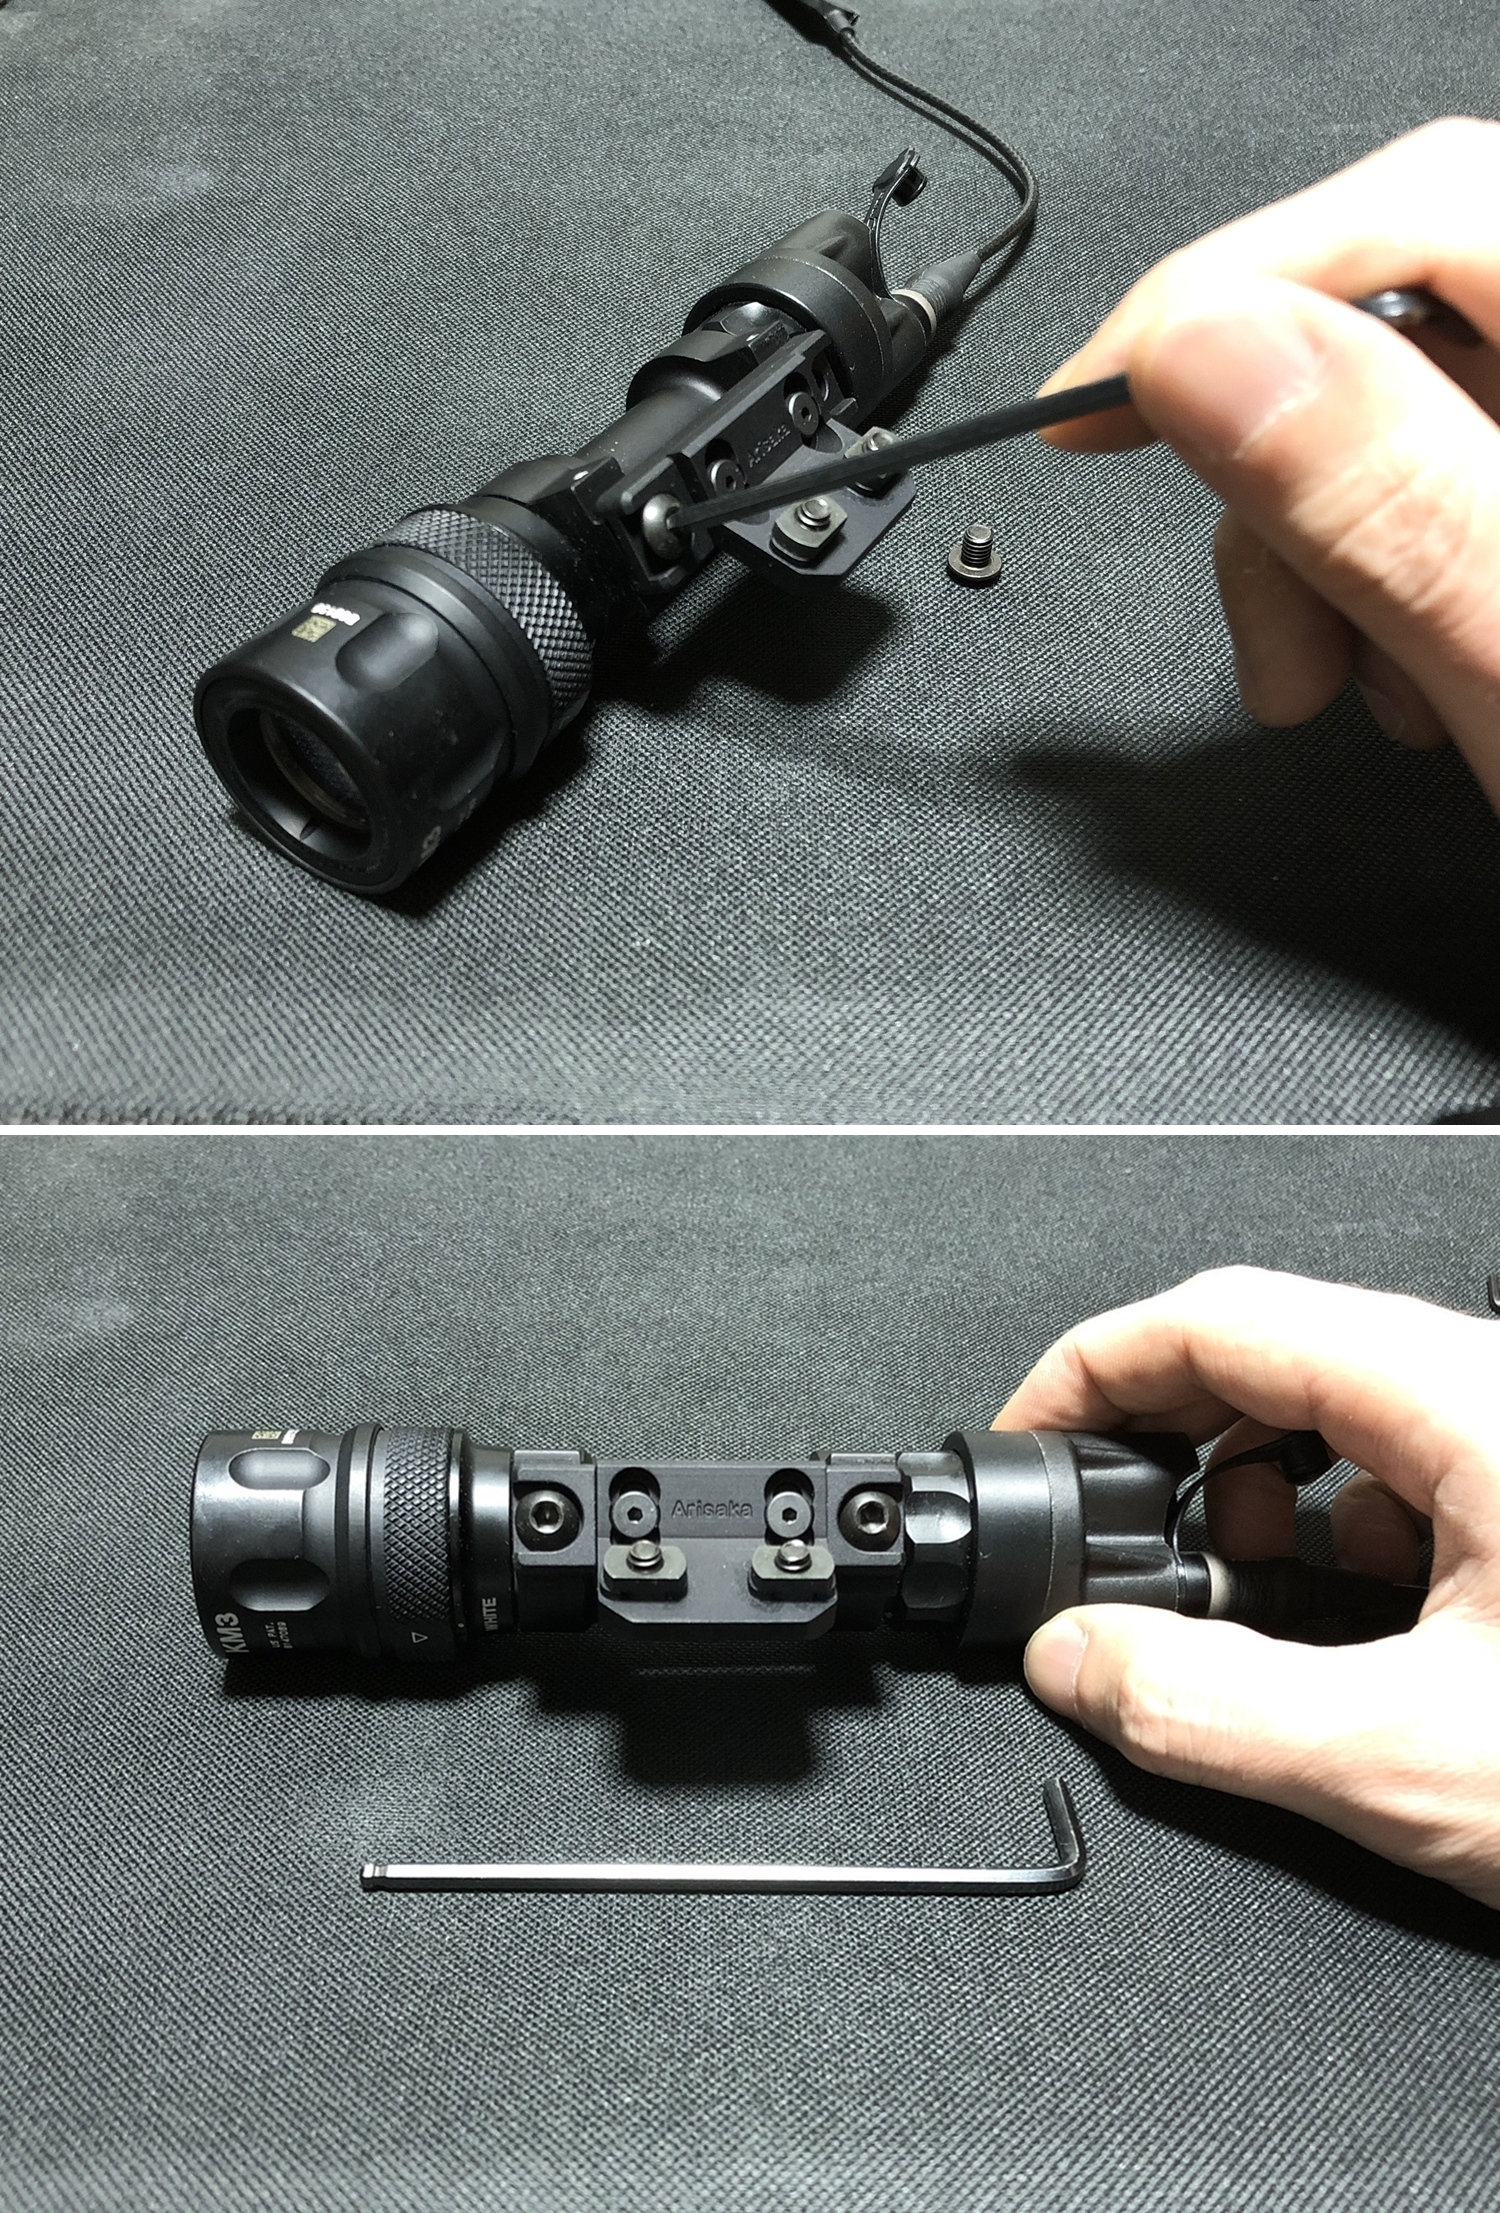 14 実物 ARISAKA DEFENSE LLC OFFSET M620 ADAPTER & SCOUT MOUNT M-LOK & SUREFIRE M952V 実物 アリサカ